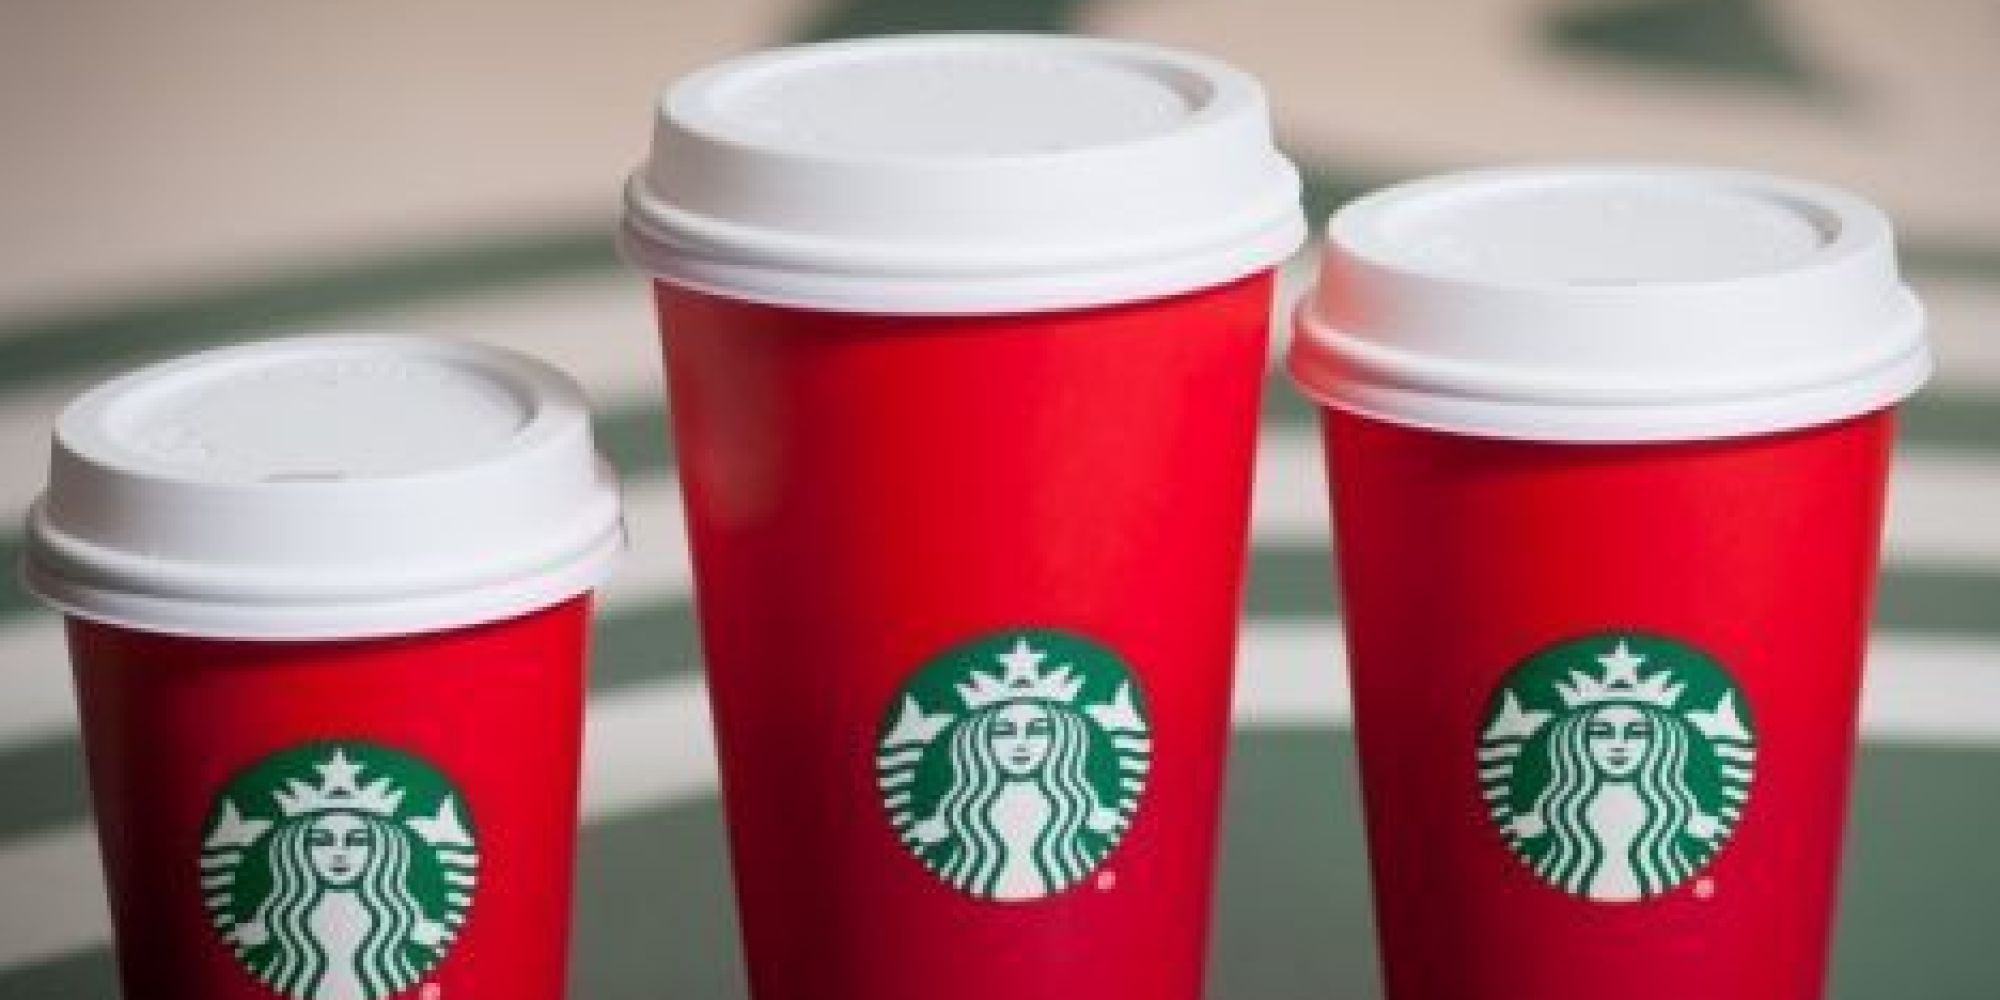 New Starbucks cups. Red...just like the devil.